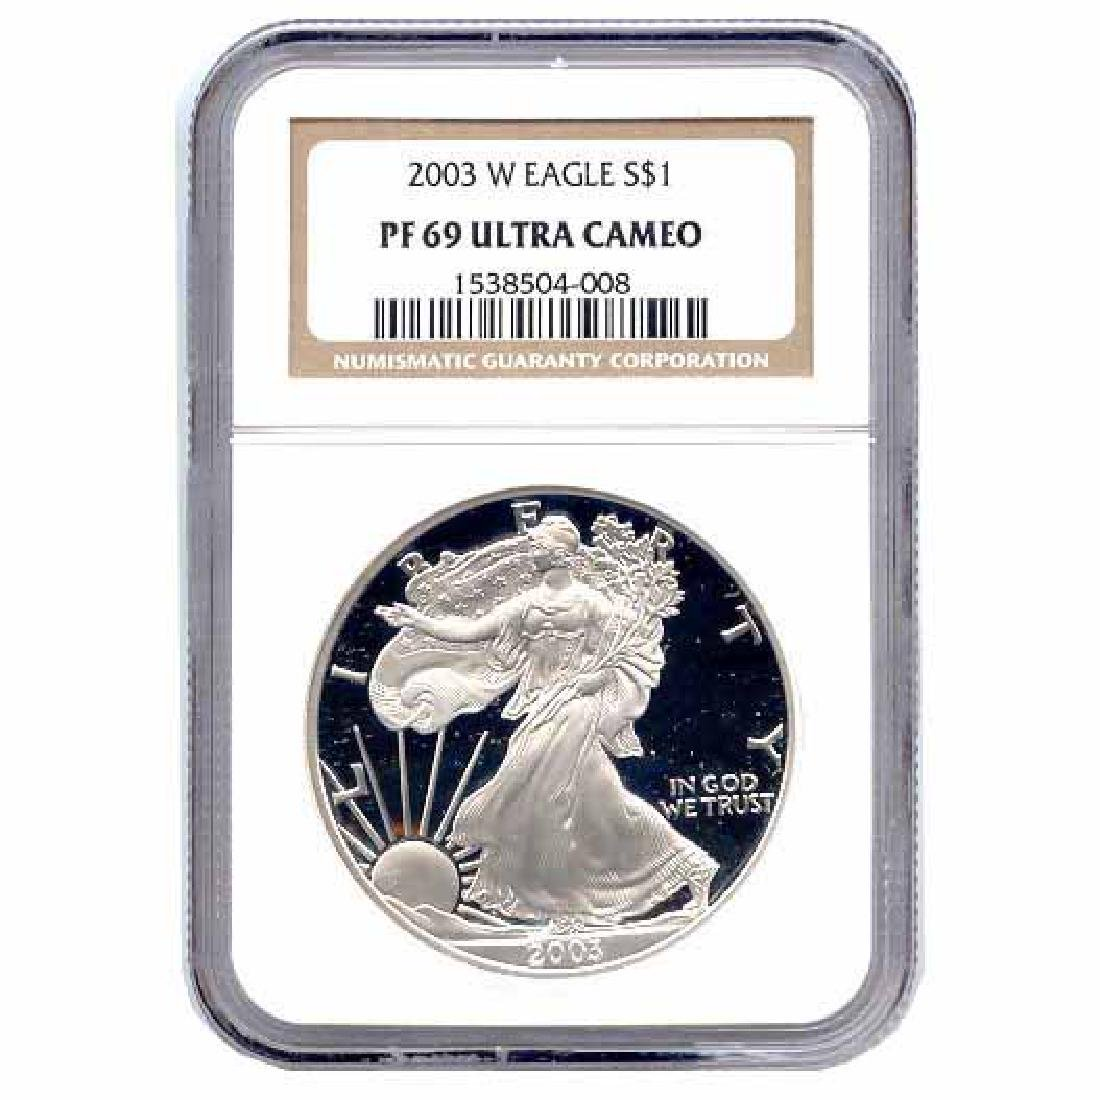 Certified Proof Silver Eagle PF69 2003